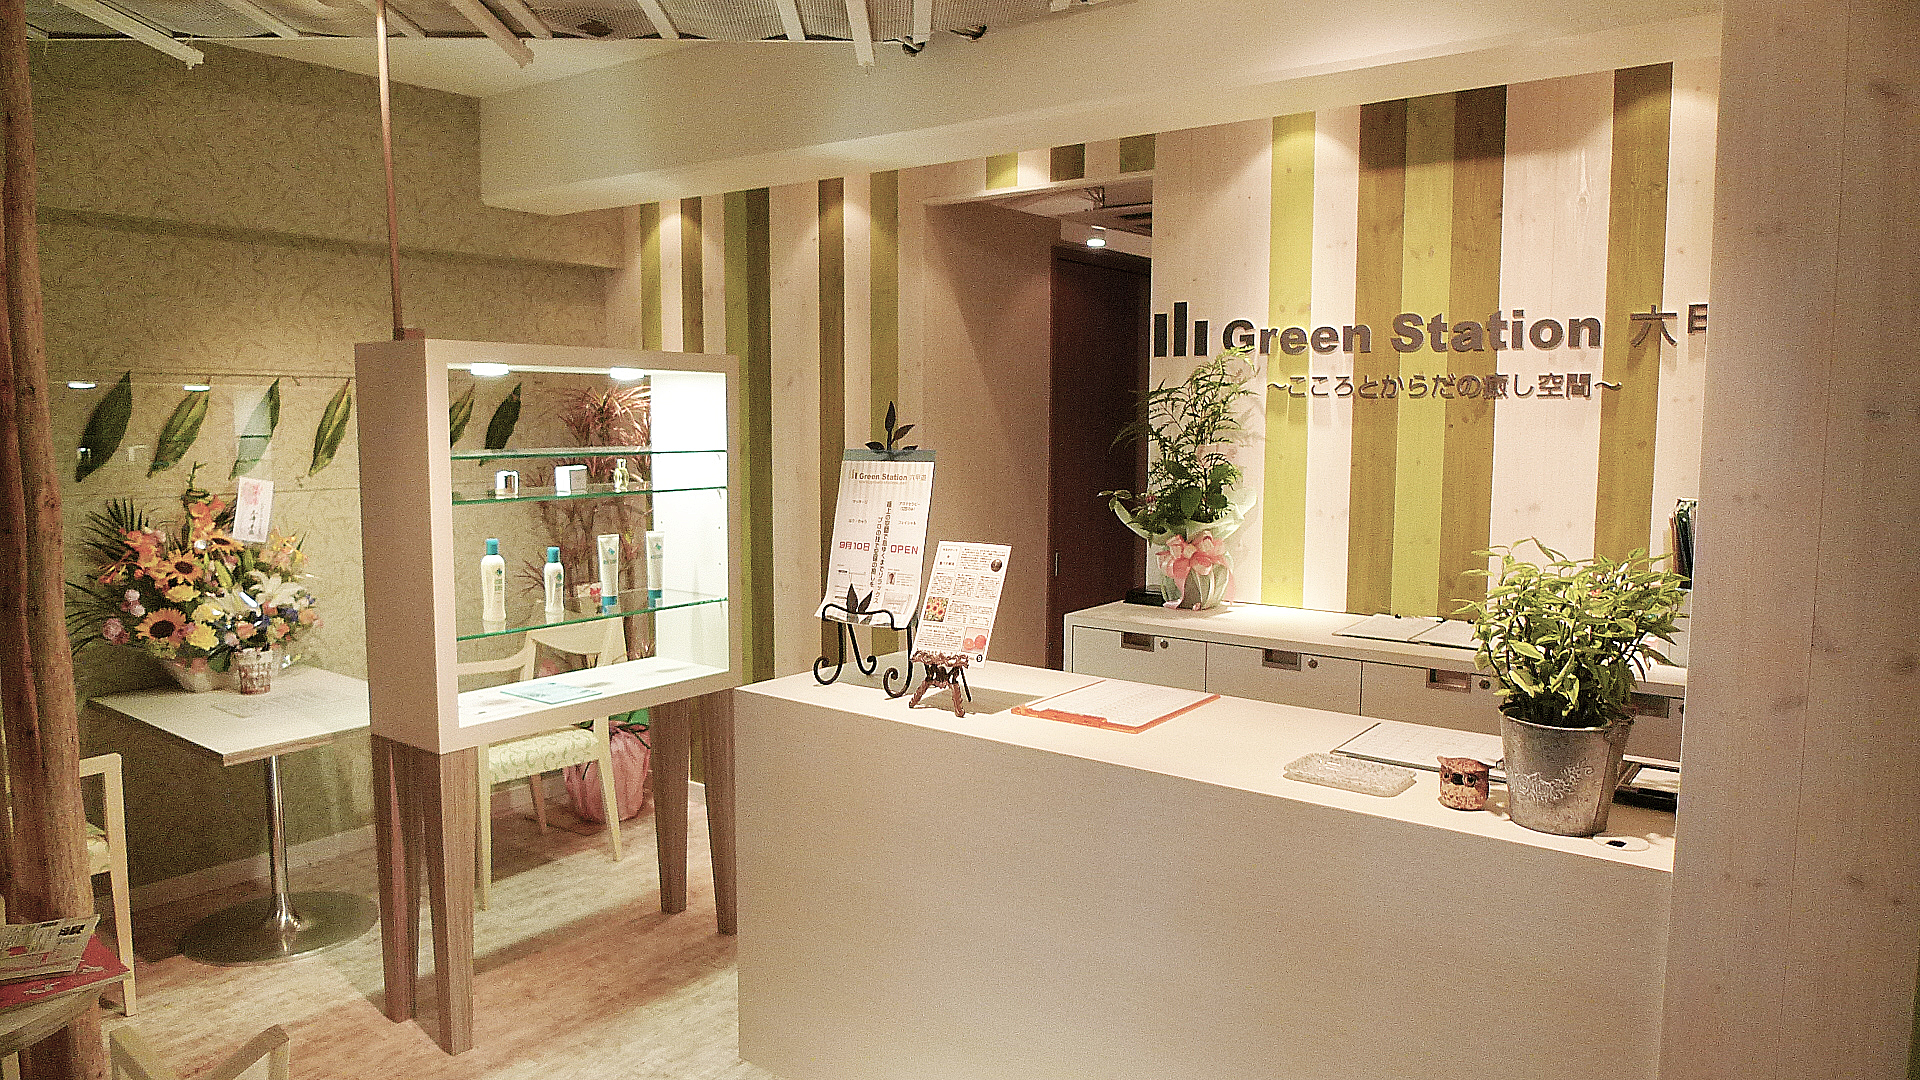 Green Station 六甲道